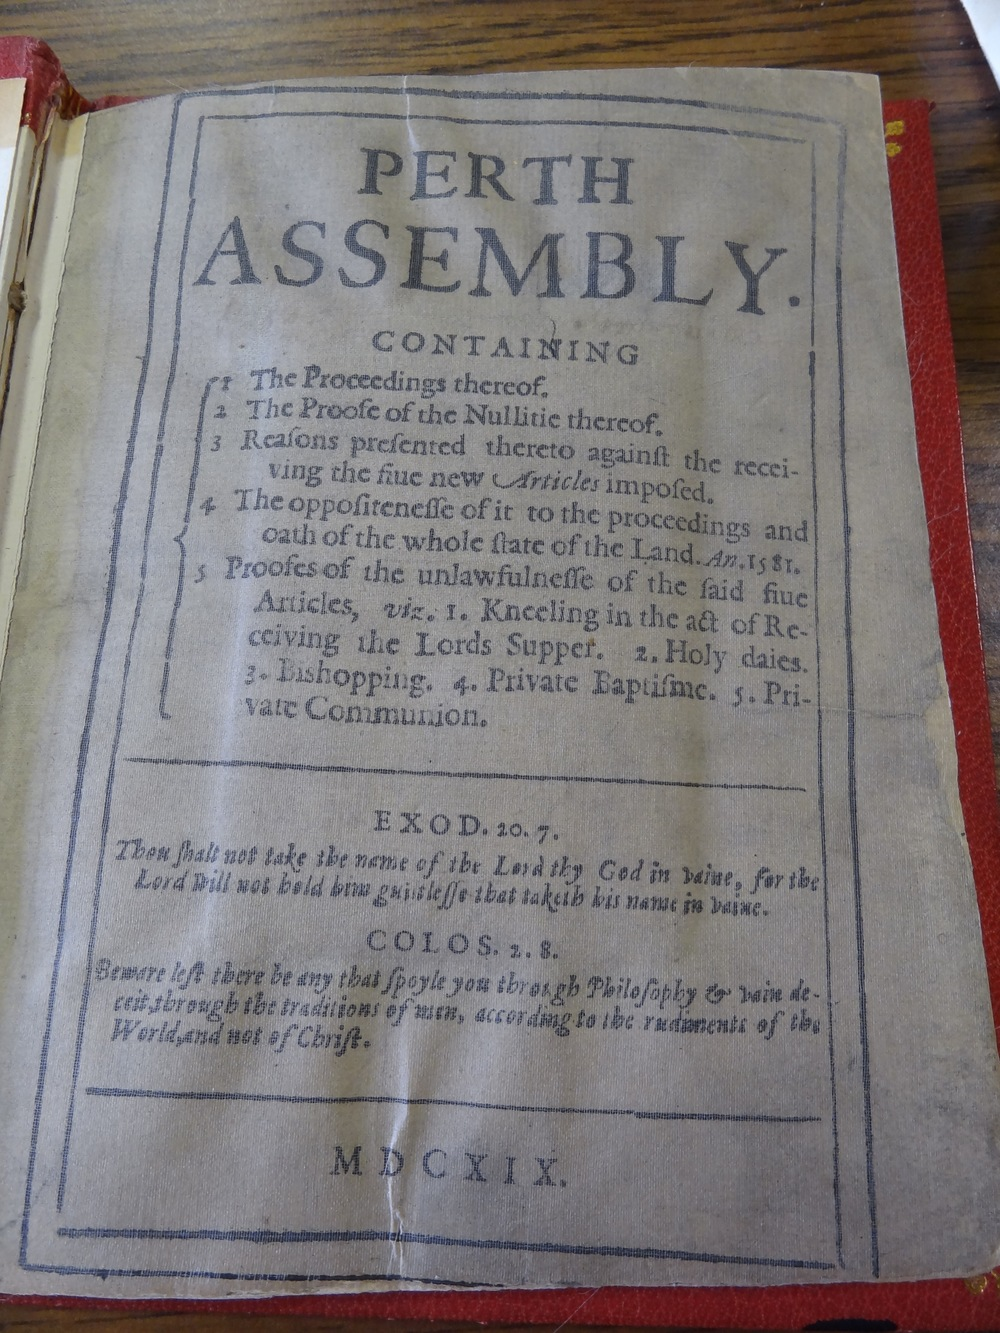 Perth Assemby, the book William Brewster secretly published and distributed in England in 1619 that made King James extremely angry and resulted in the eventual confiscation of his printing press, the arrest of Thomas Brewer by University of Leiden authorities, and forced Brewster into hiding.